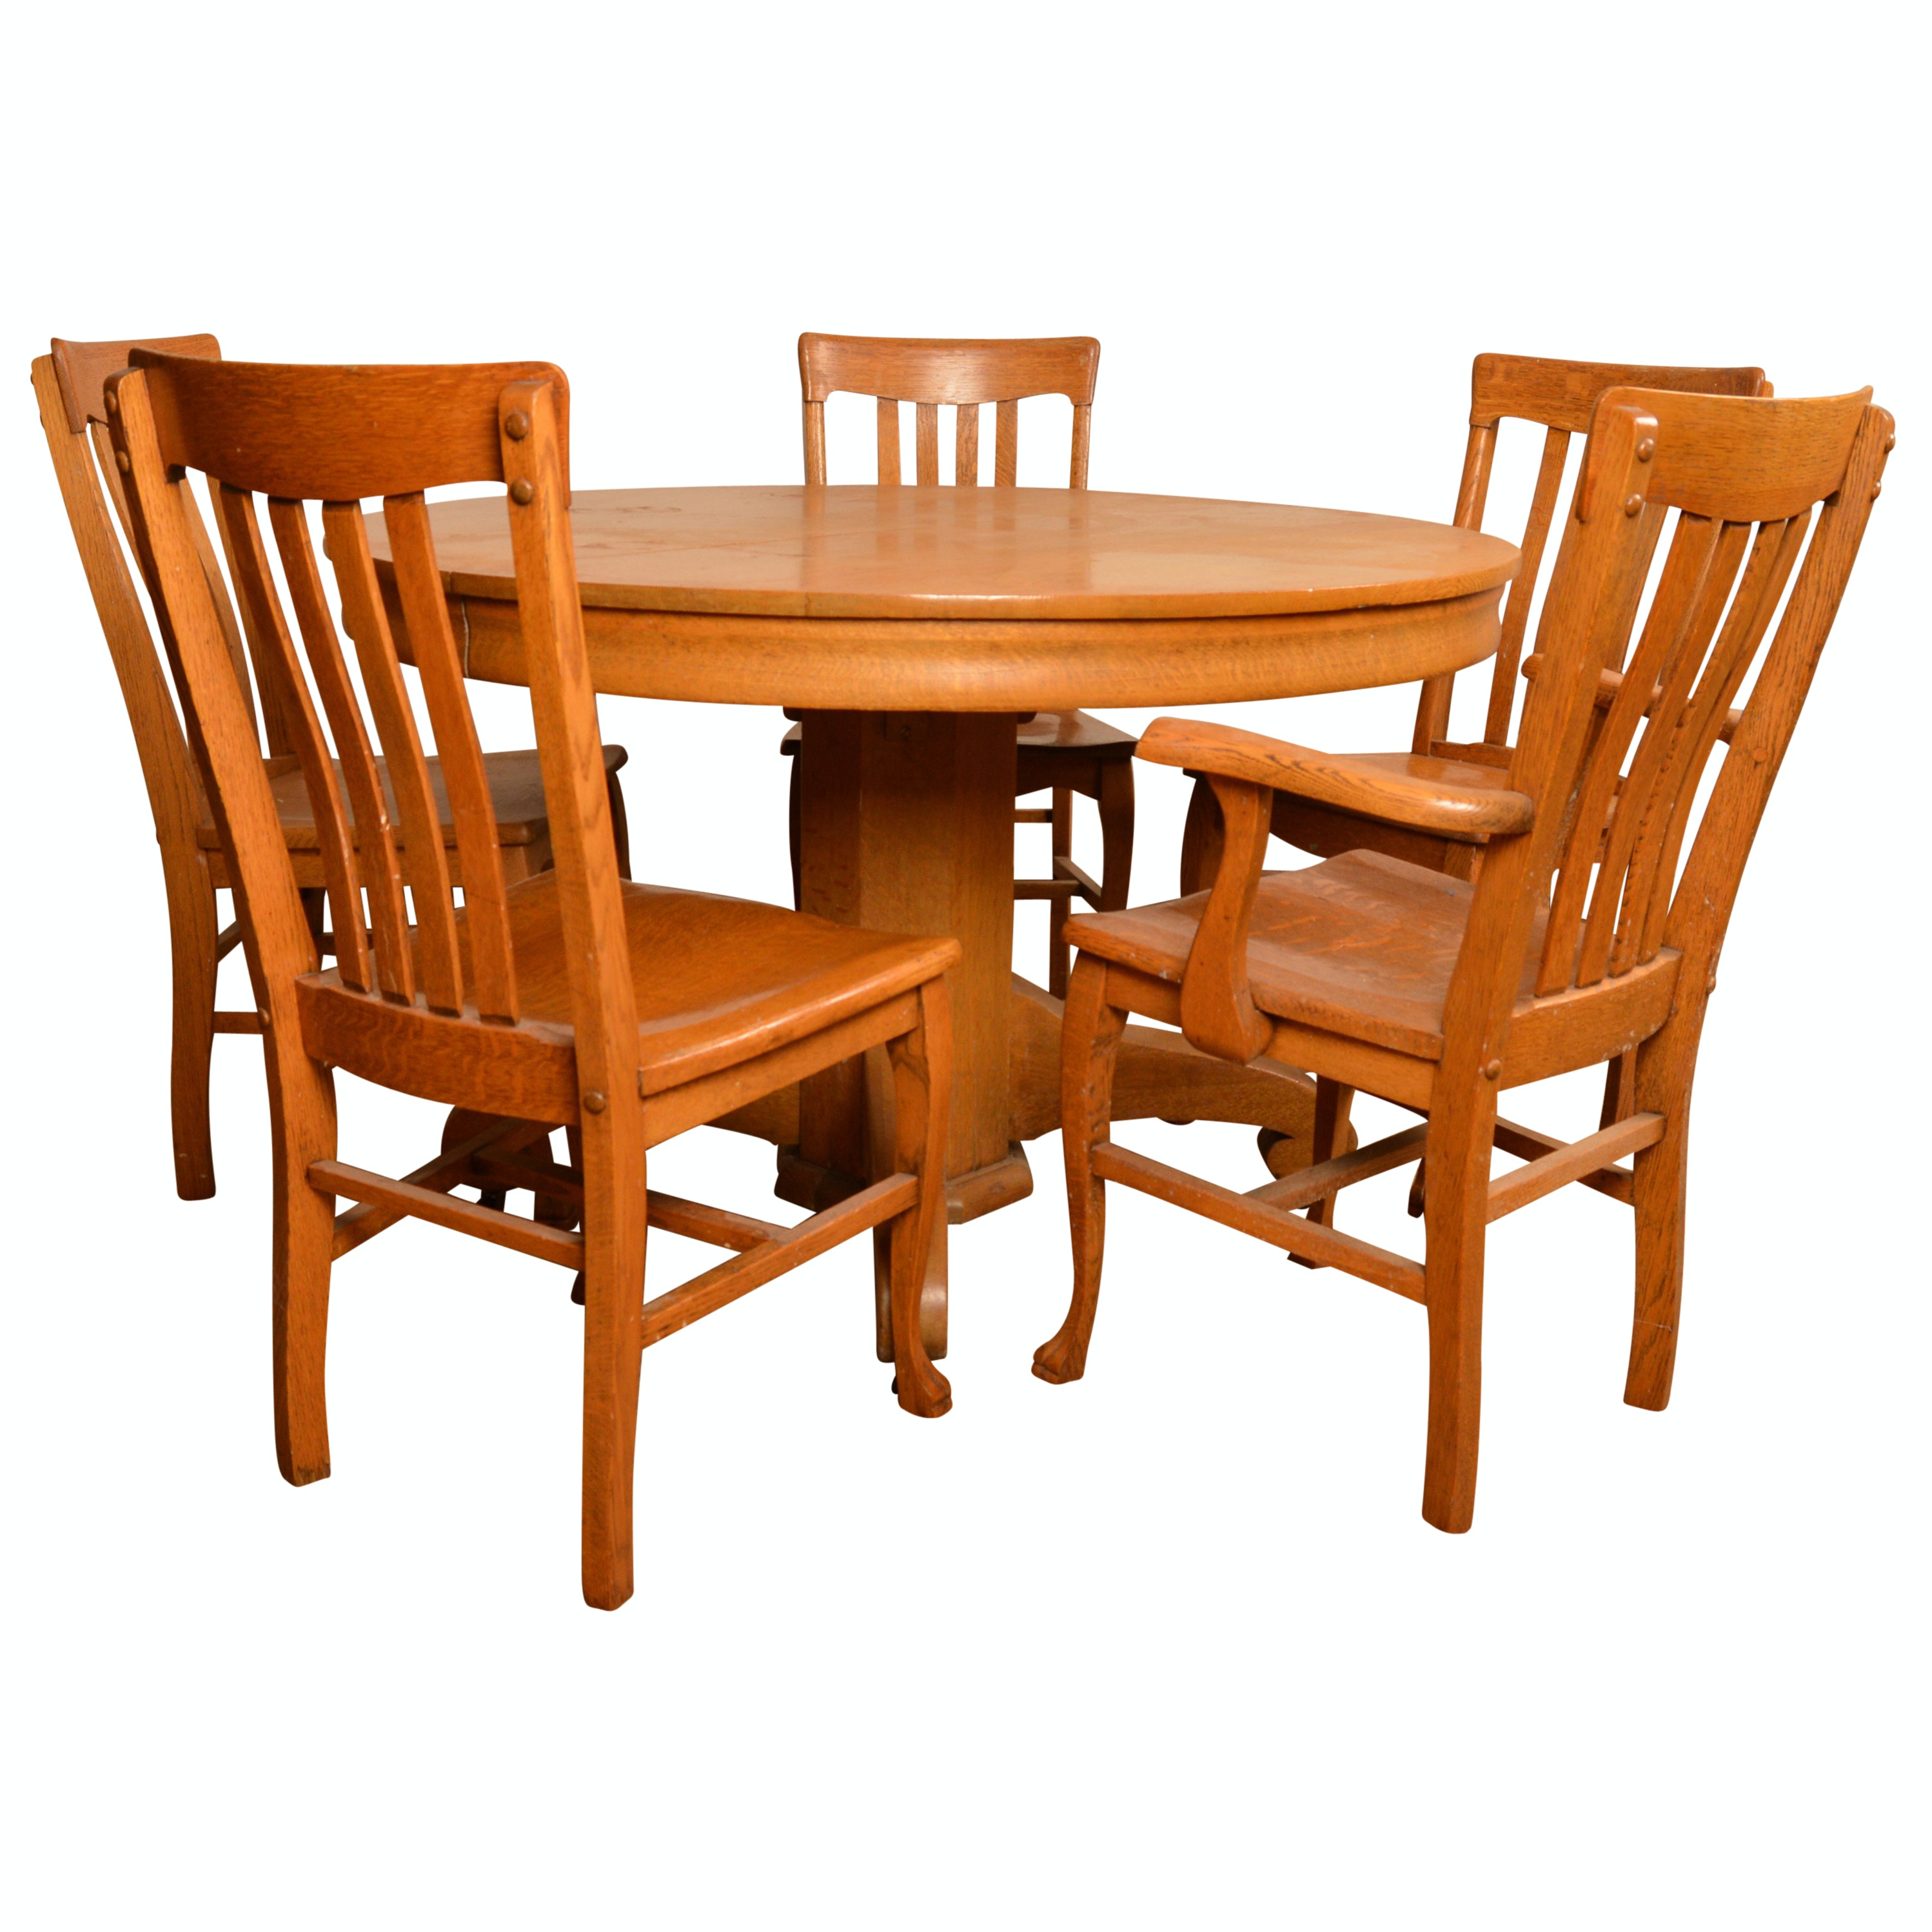 Stained Oak Dining Table with Five Chairs